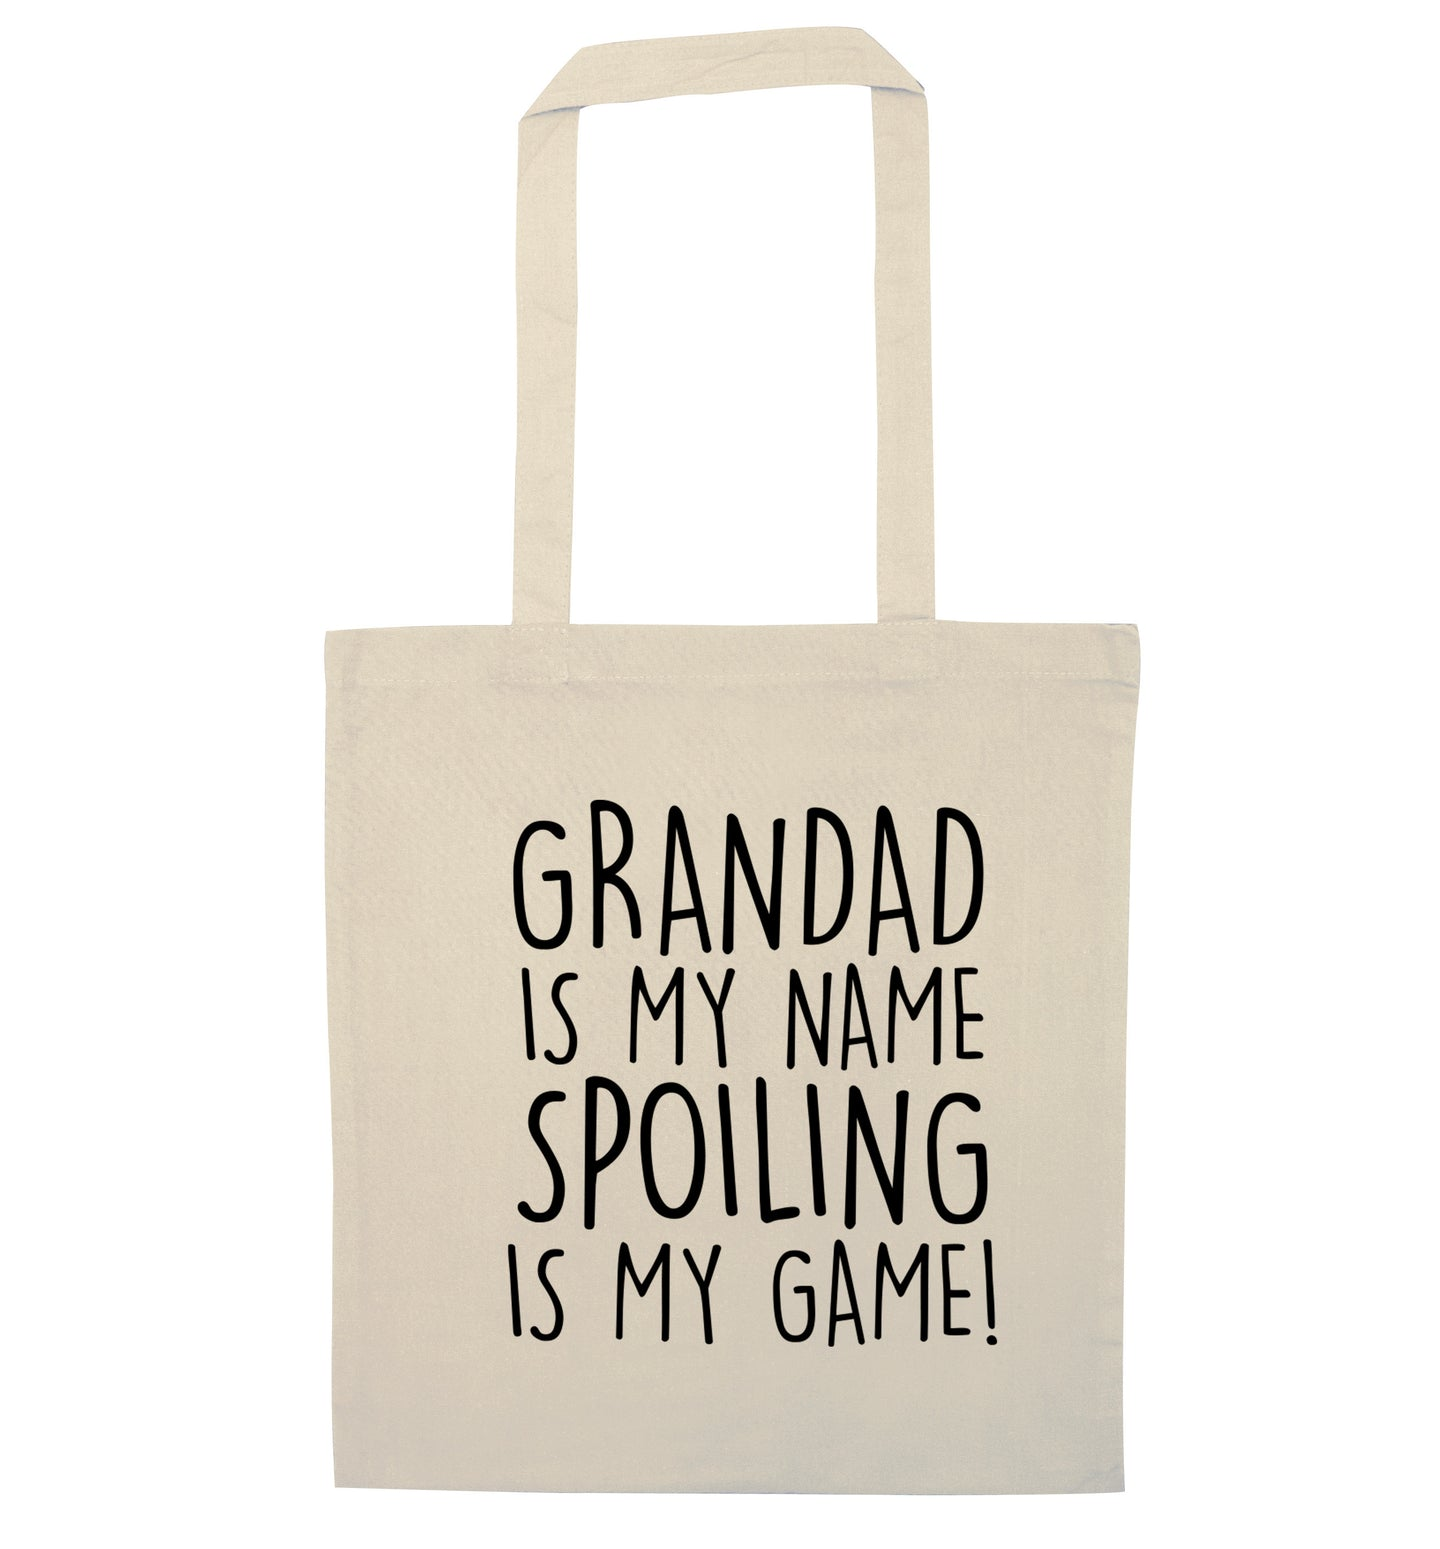 Grandad is my name, spoiling is my game natural tote bag